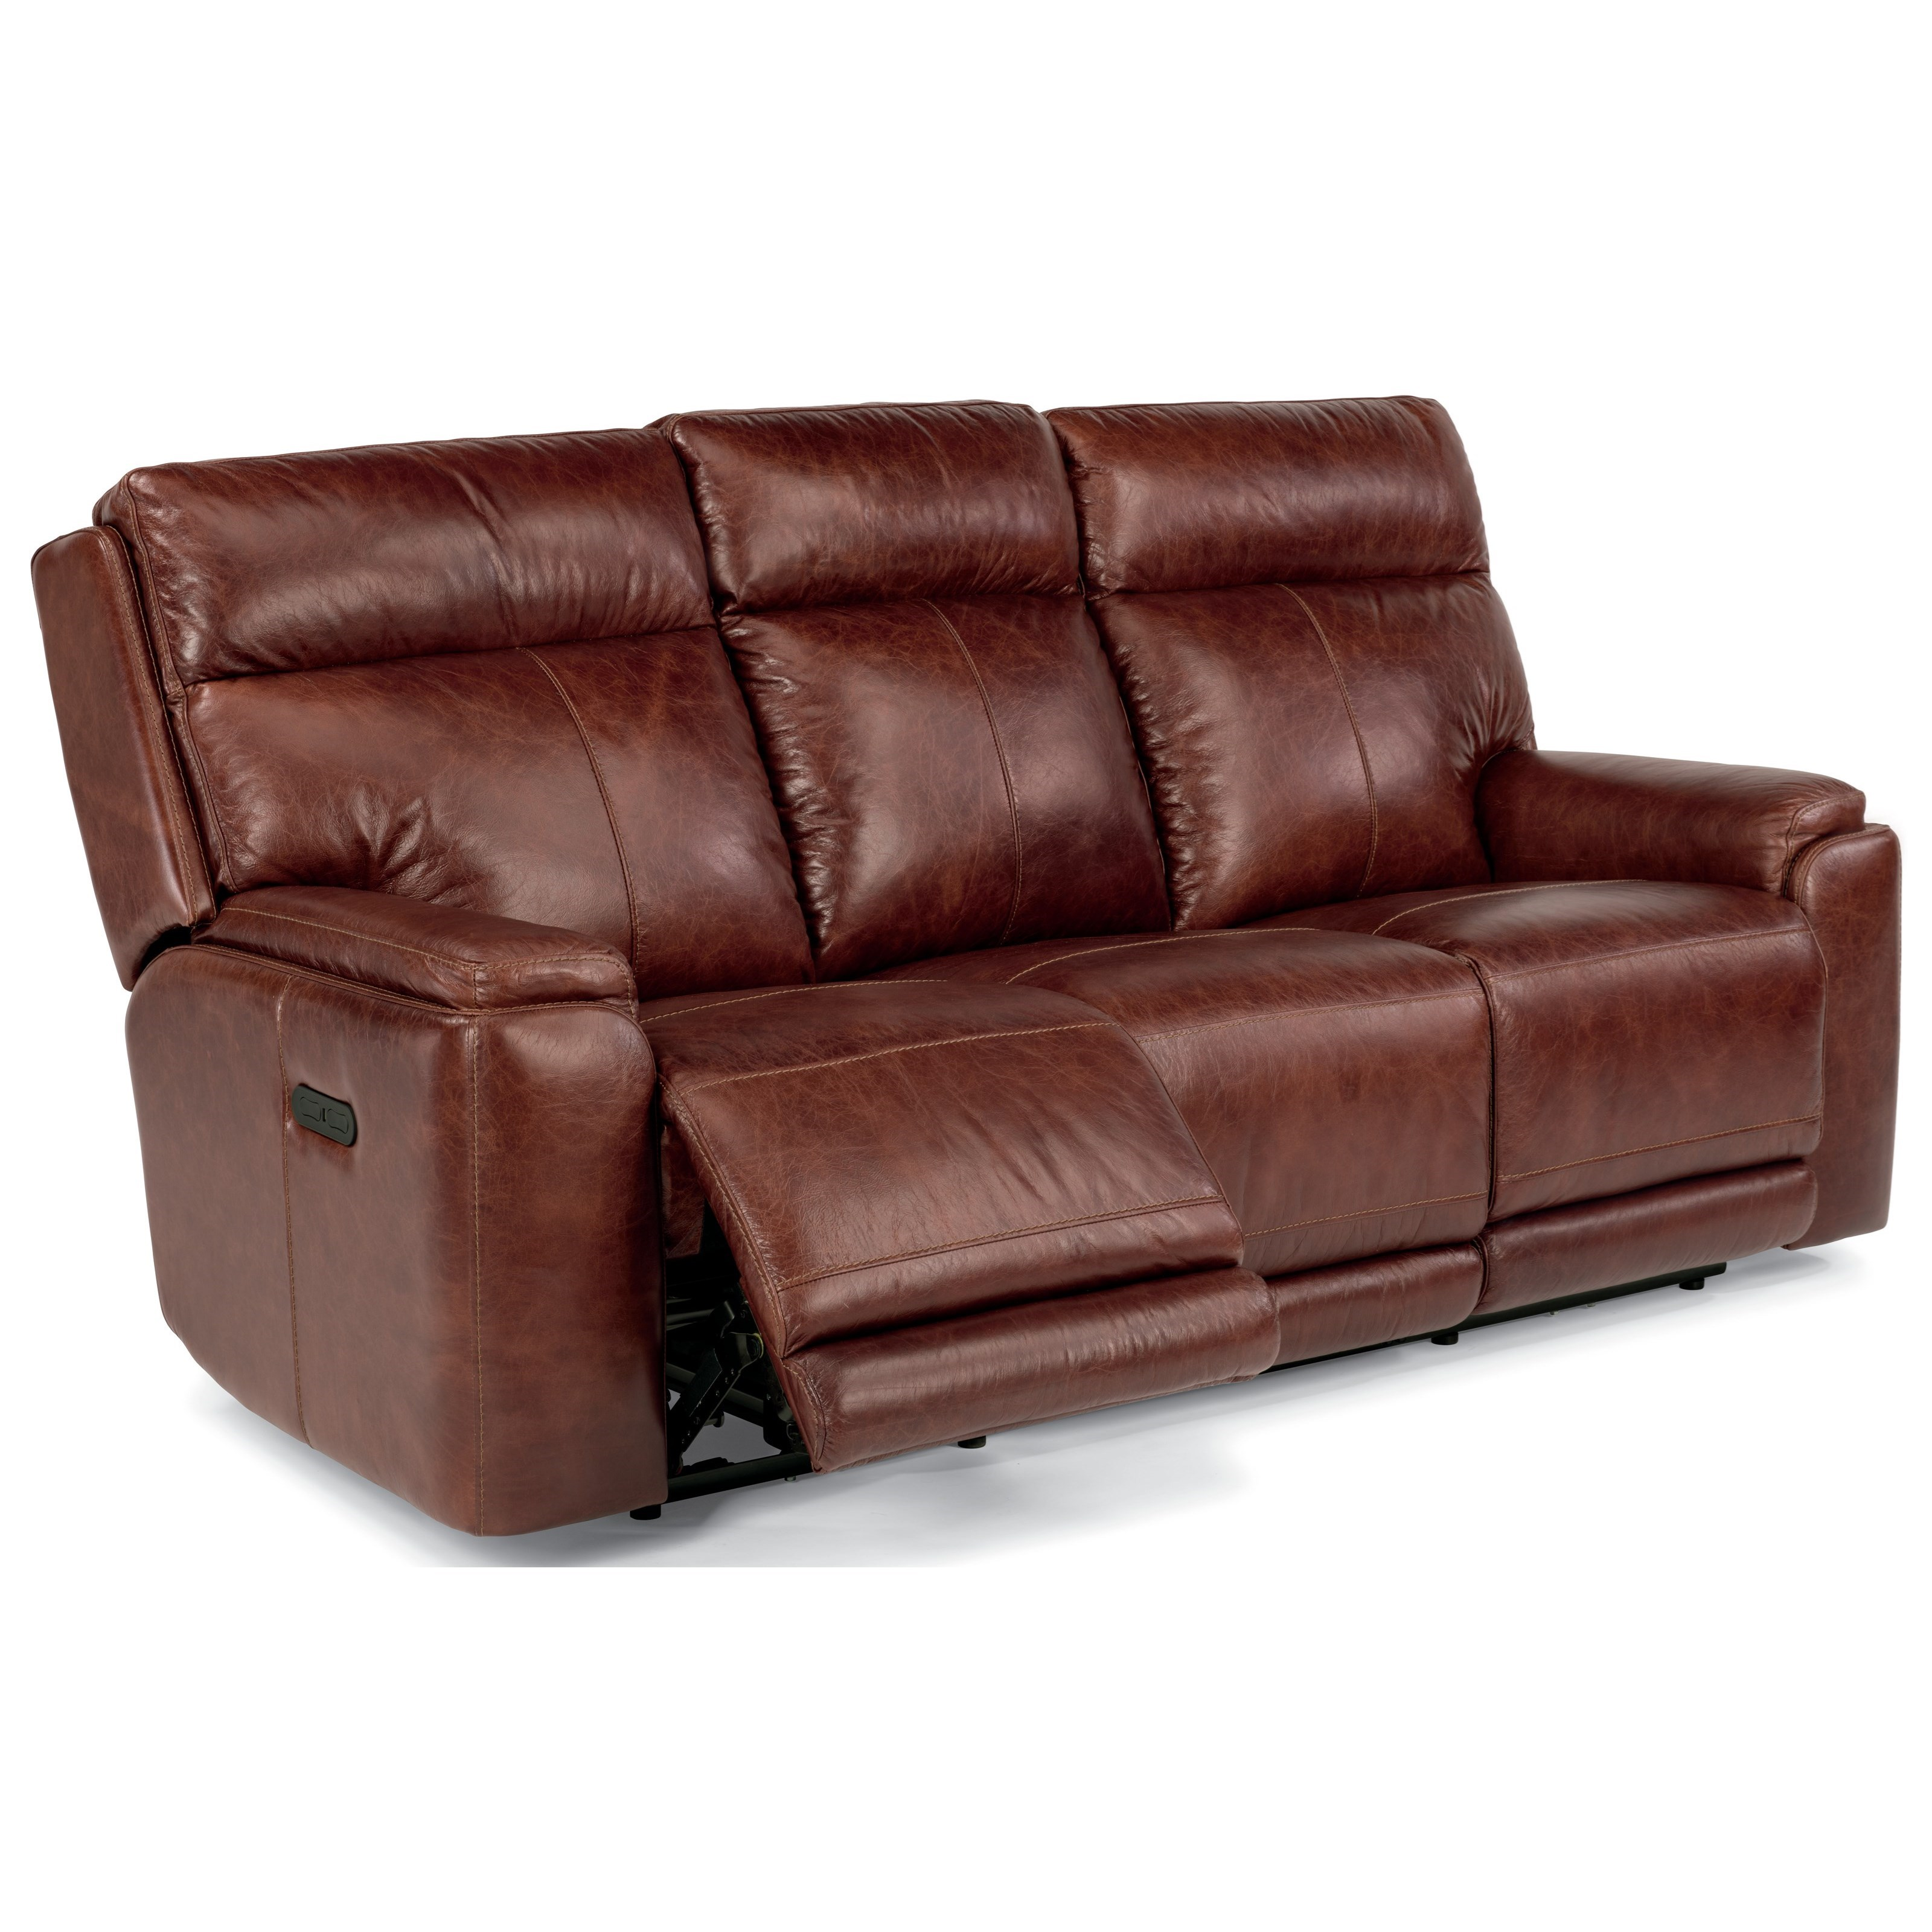 Flexsteel latitudes sienna 1675 62ph power reclining sofa Reclining leather sofa and loveseat